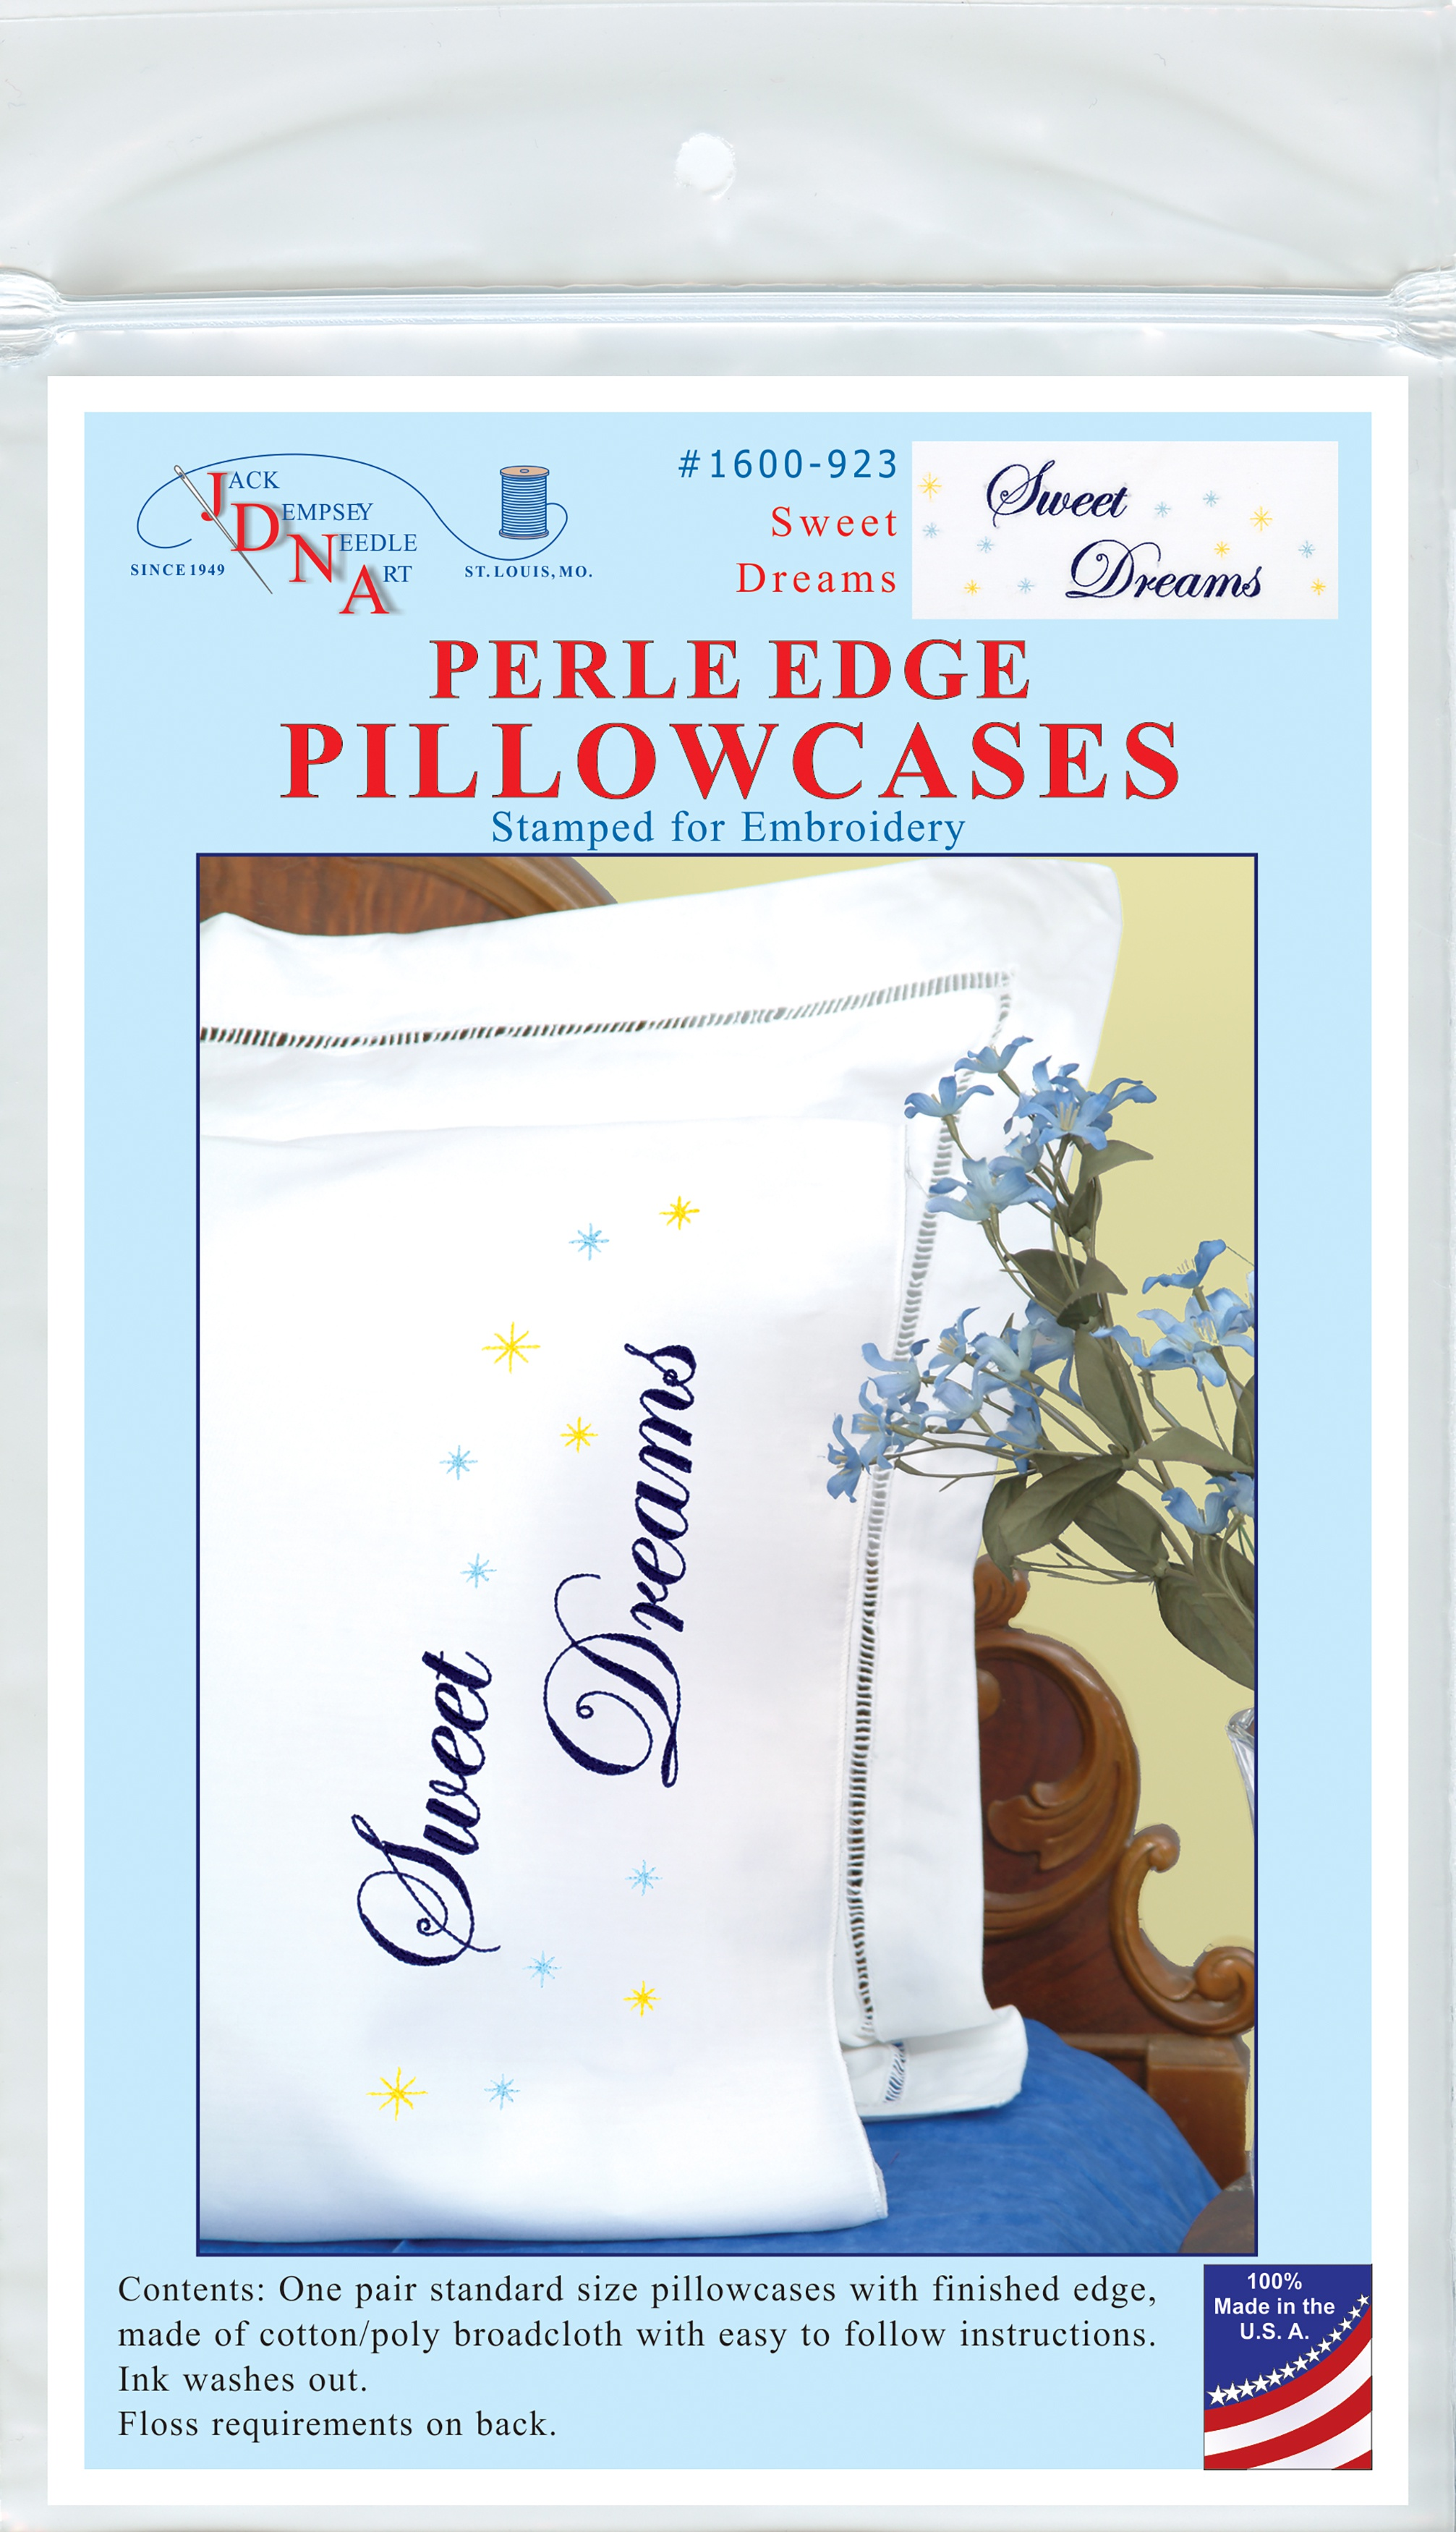 Jack Dempsey Stamped Pillowcases W/White Perle Edge 2/Pkg-Sweet Dreams